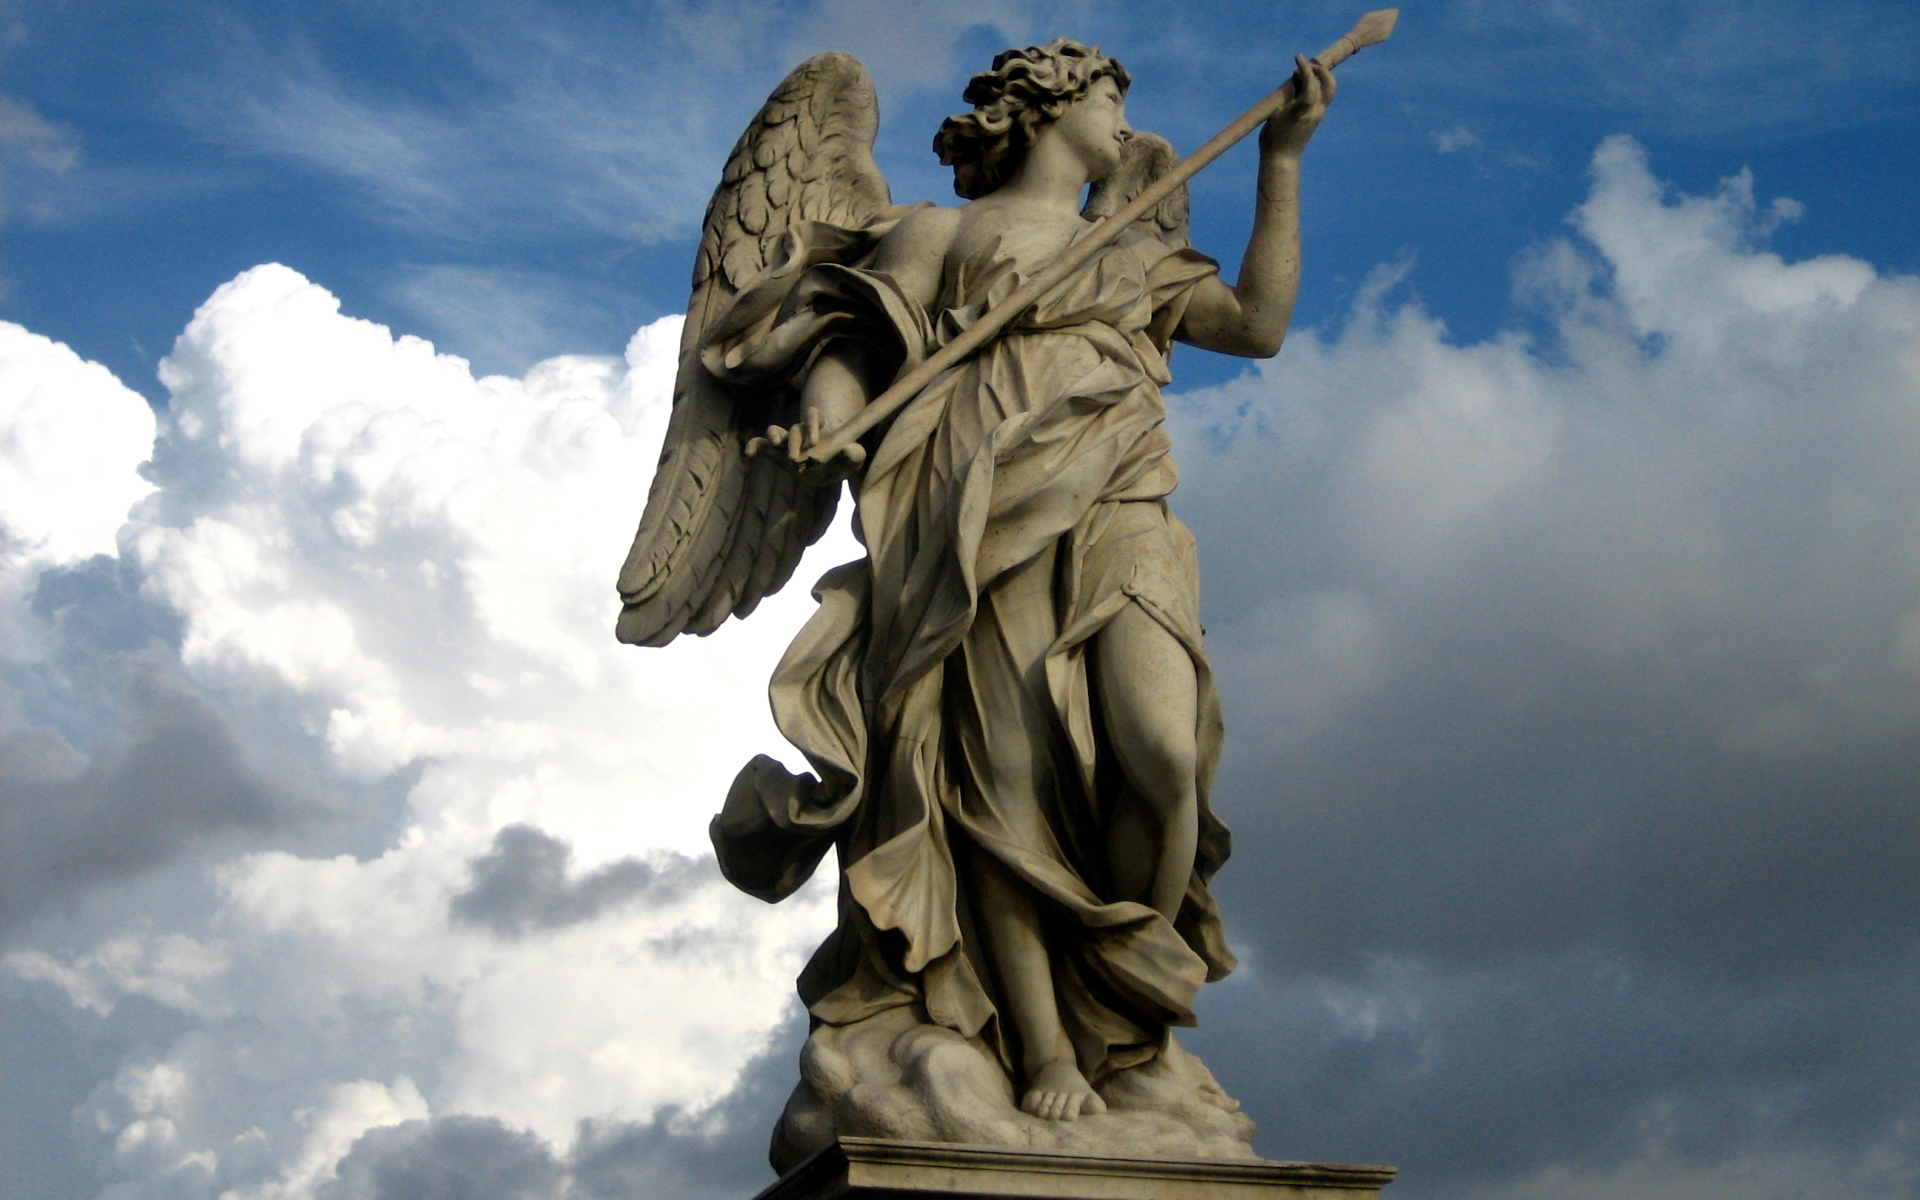 angel statue desktop wallpaper 49653 1920x1200 px ~ hdwallsource